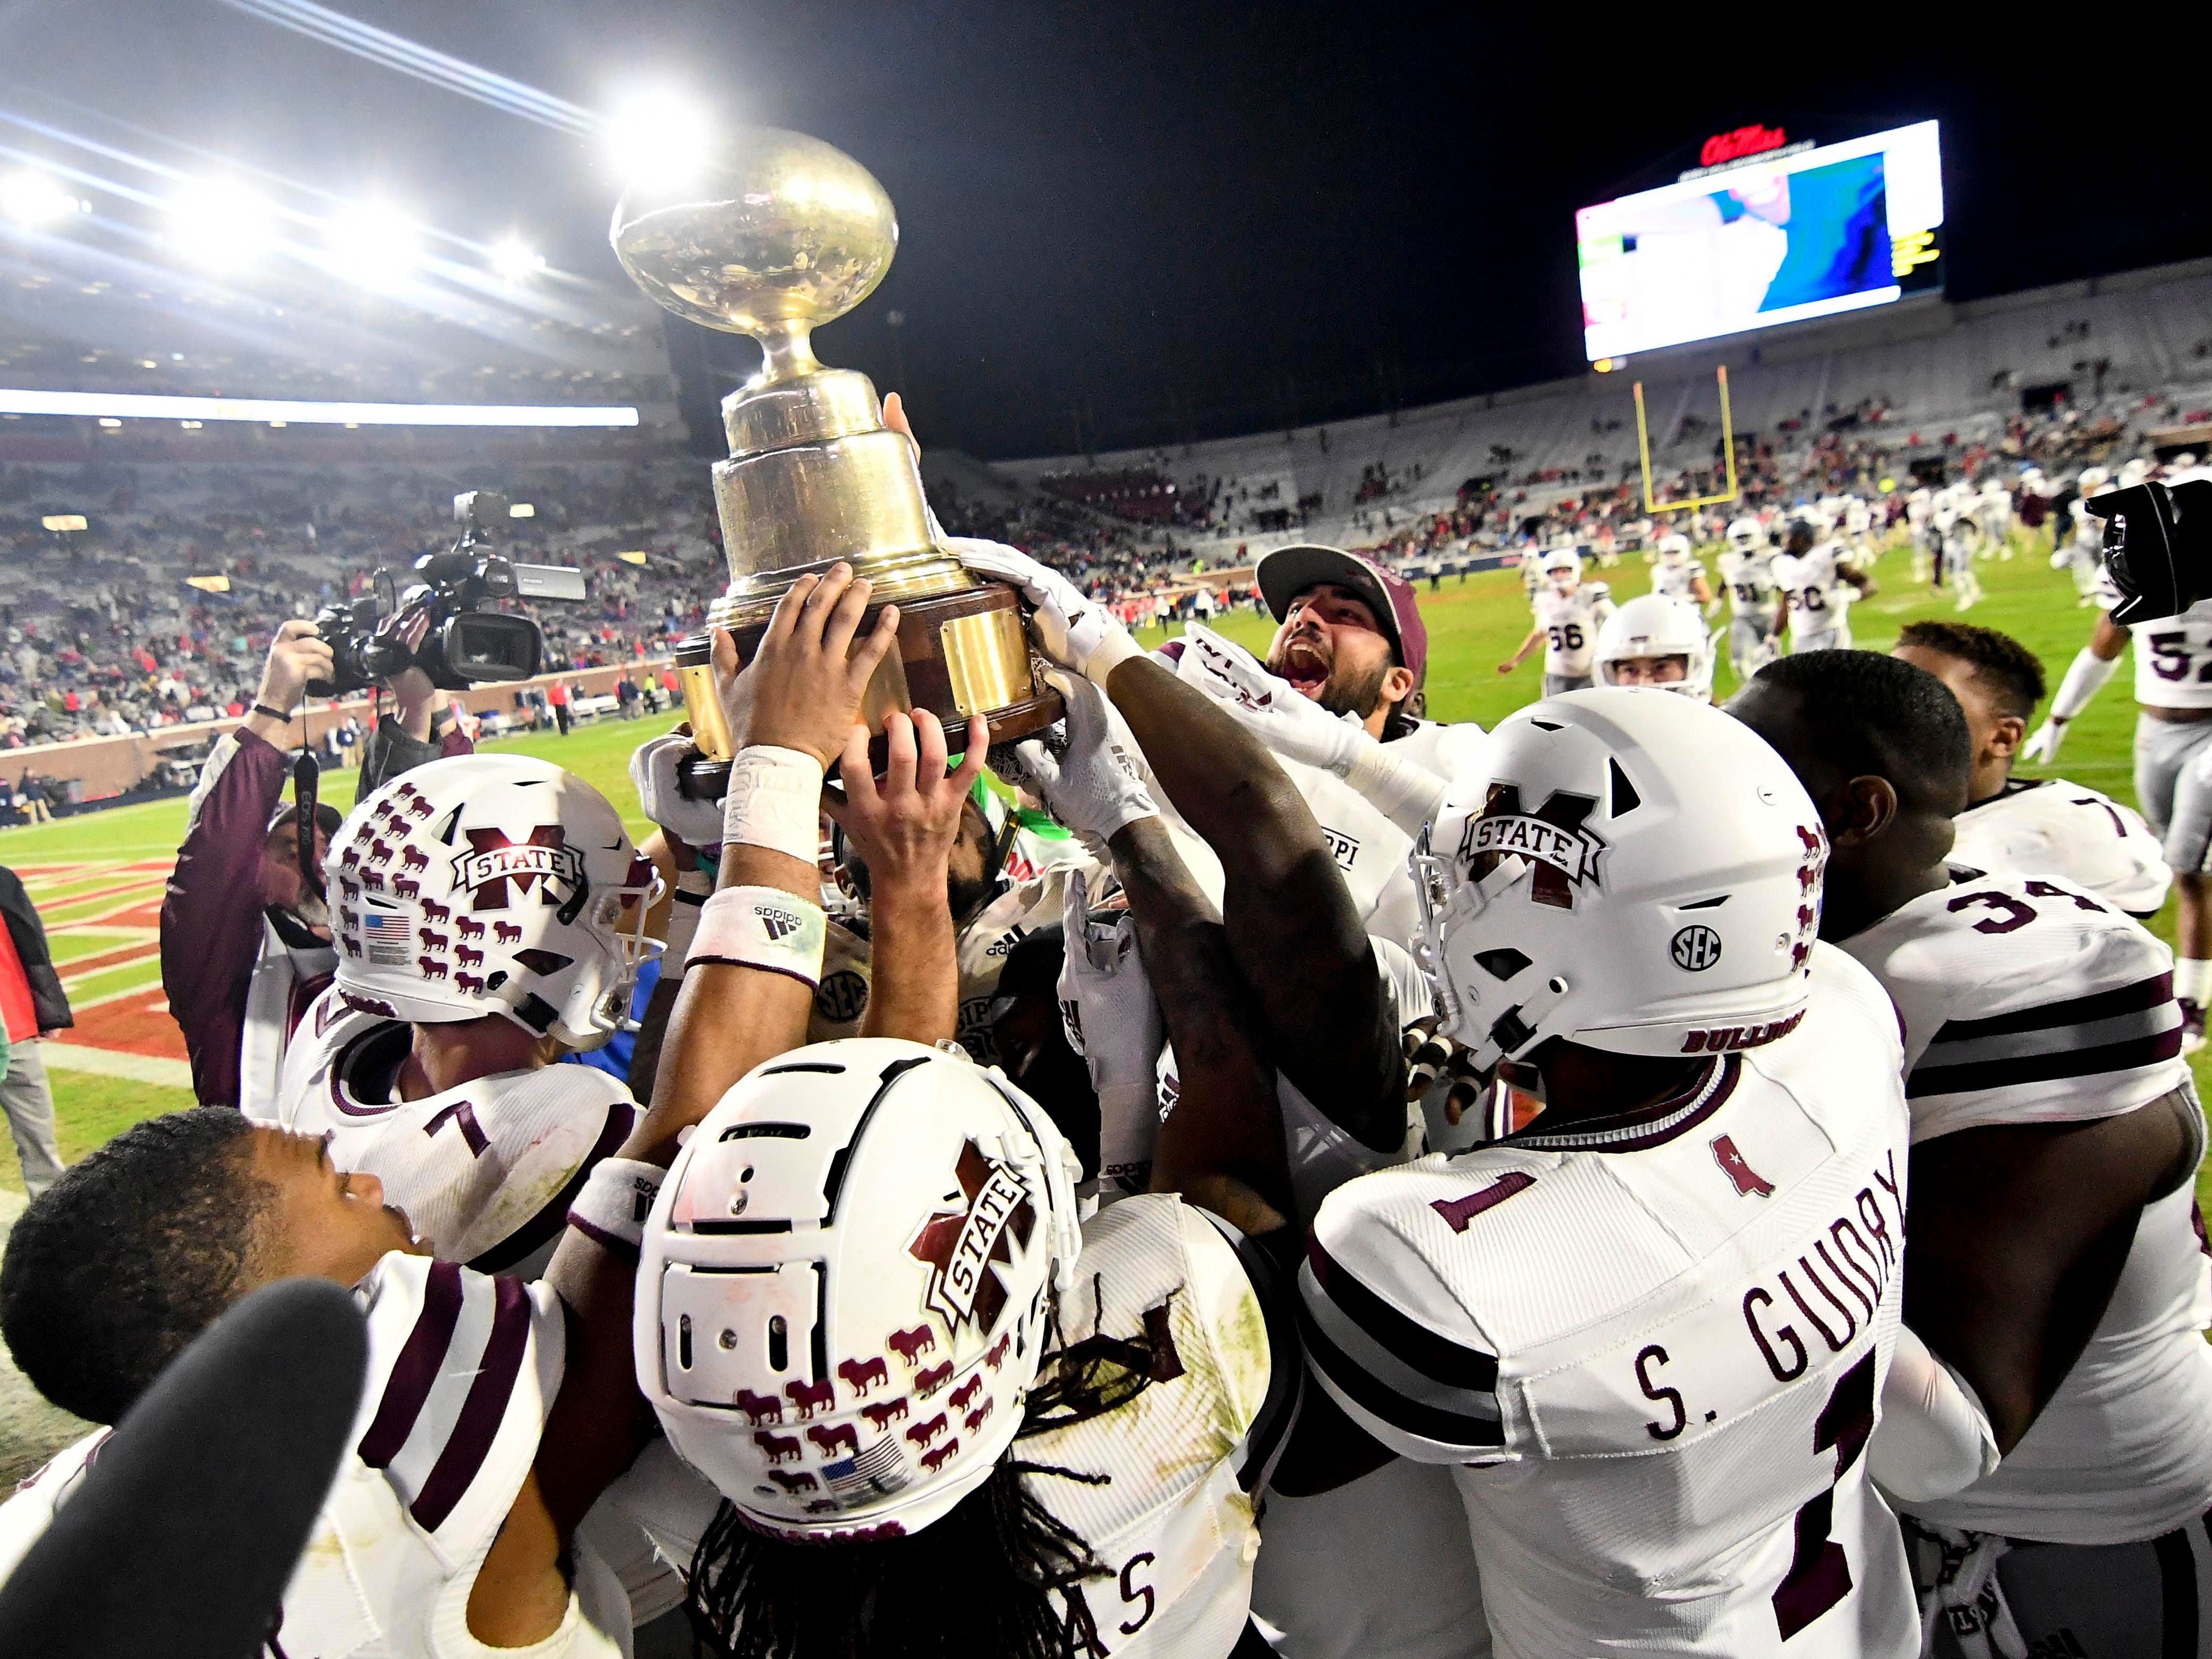 Egg Bowl: Mississippi State players celebrate with the Egg Bowl trophy after defeating Ole Miss, 35-3, at Vaught-Hemingway Stadium on Nov. 22.